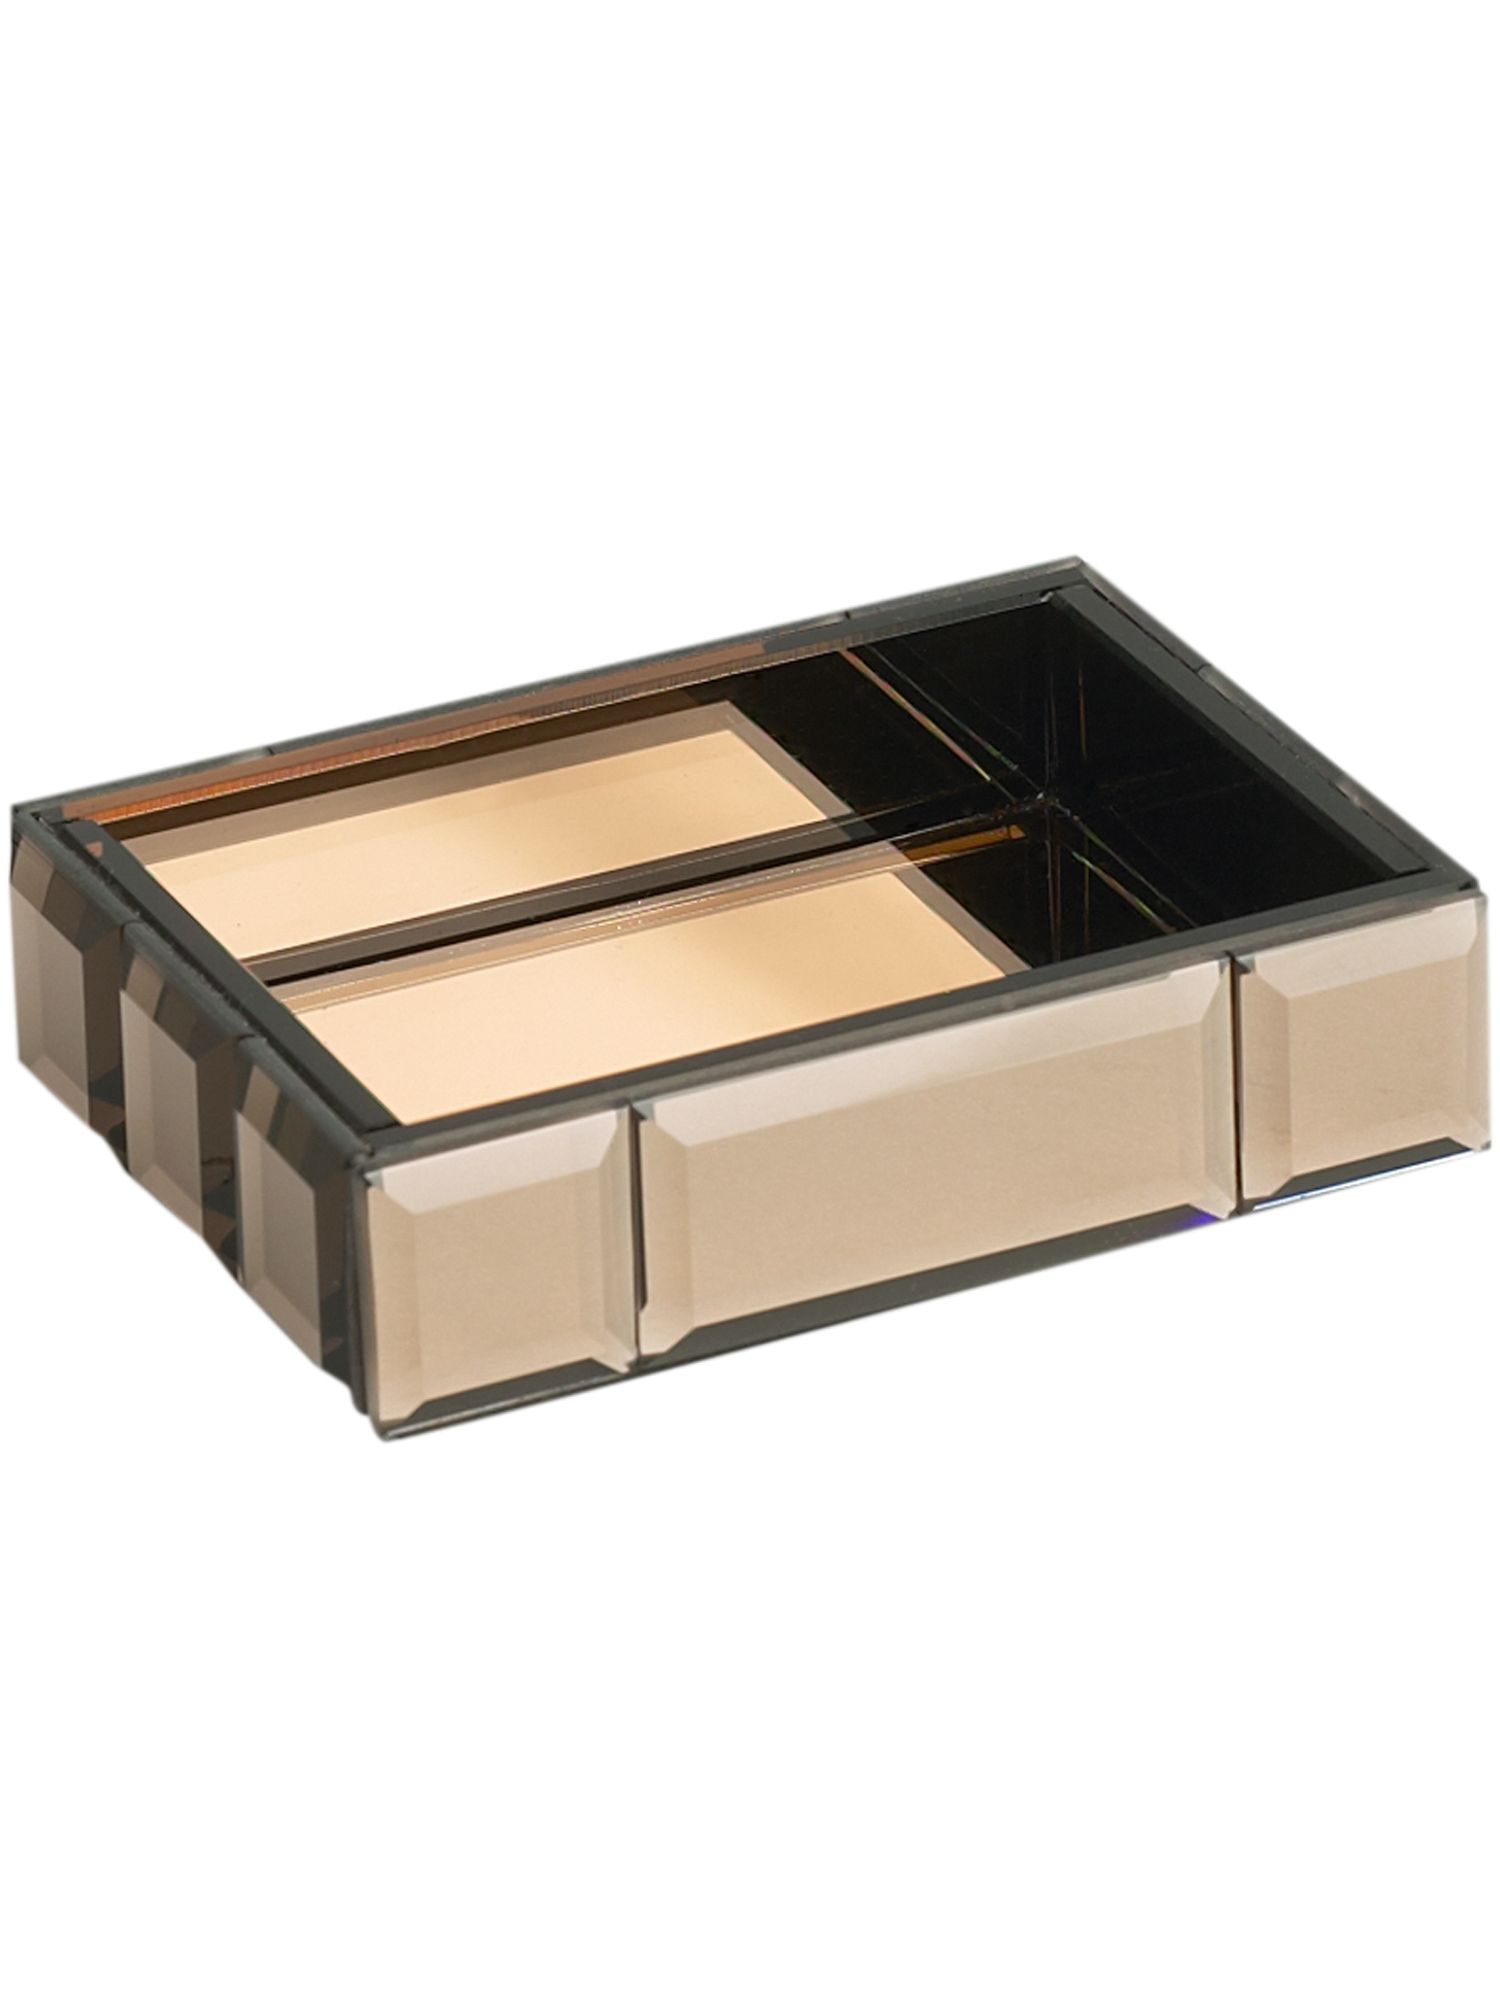 Brown mirrored soap dish 130444413